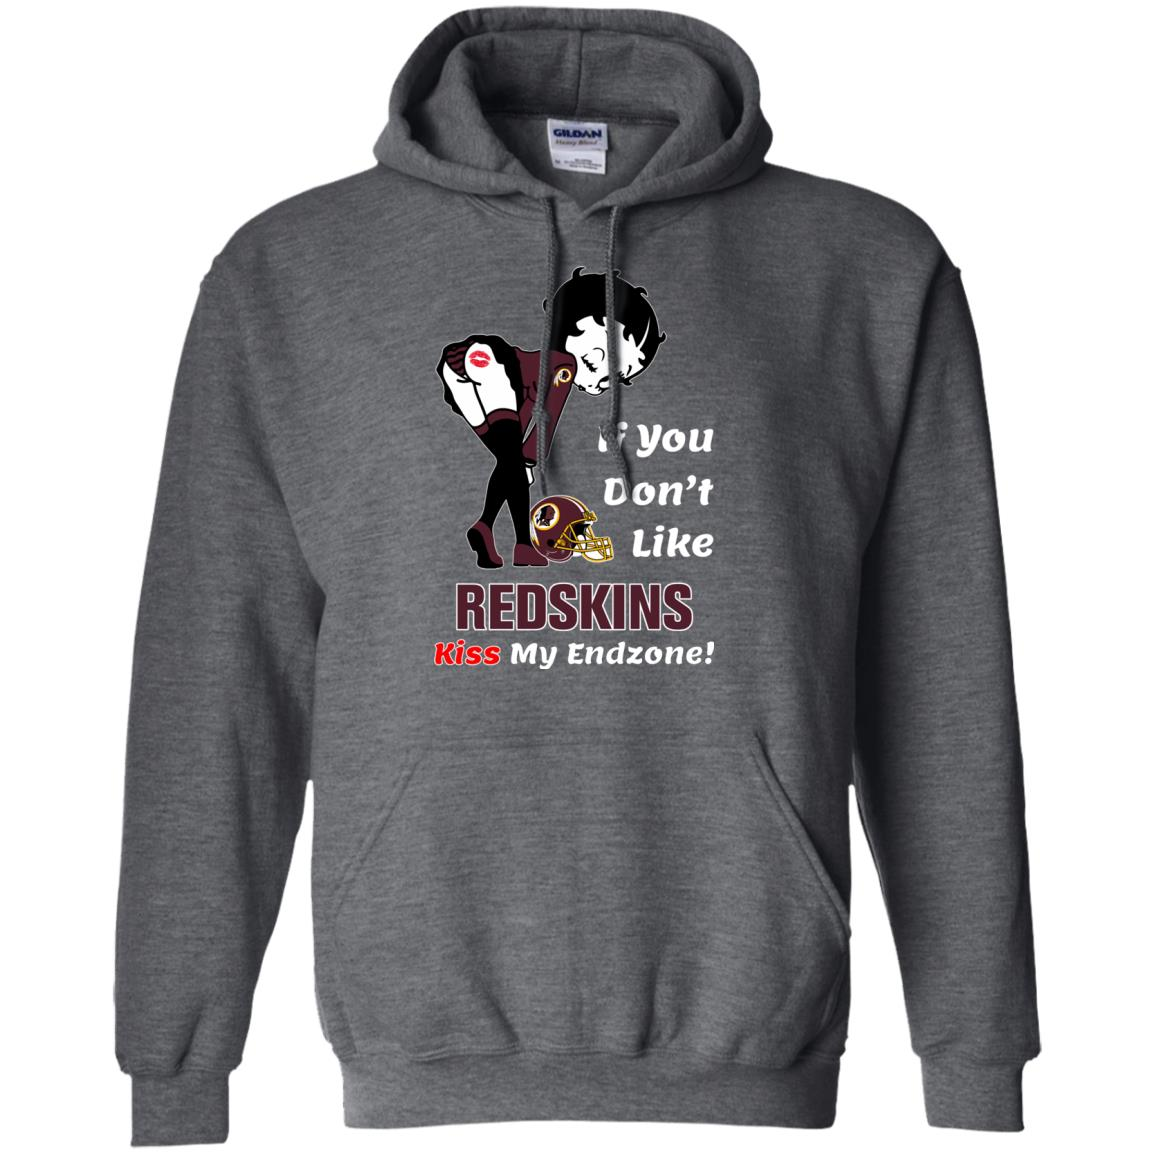 image 465px Betty Boop If you don't like Redskins kiss my endzone t shirt, hoodies, tank